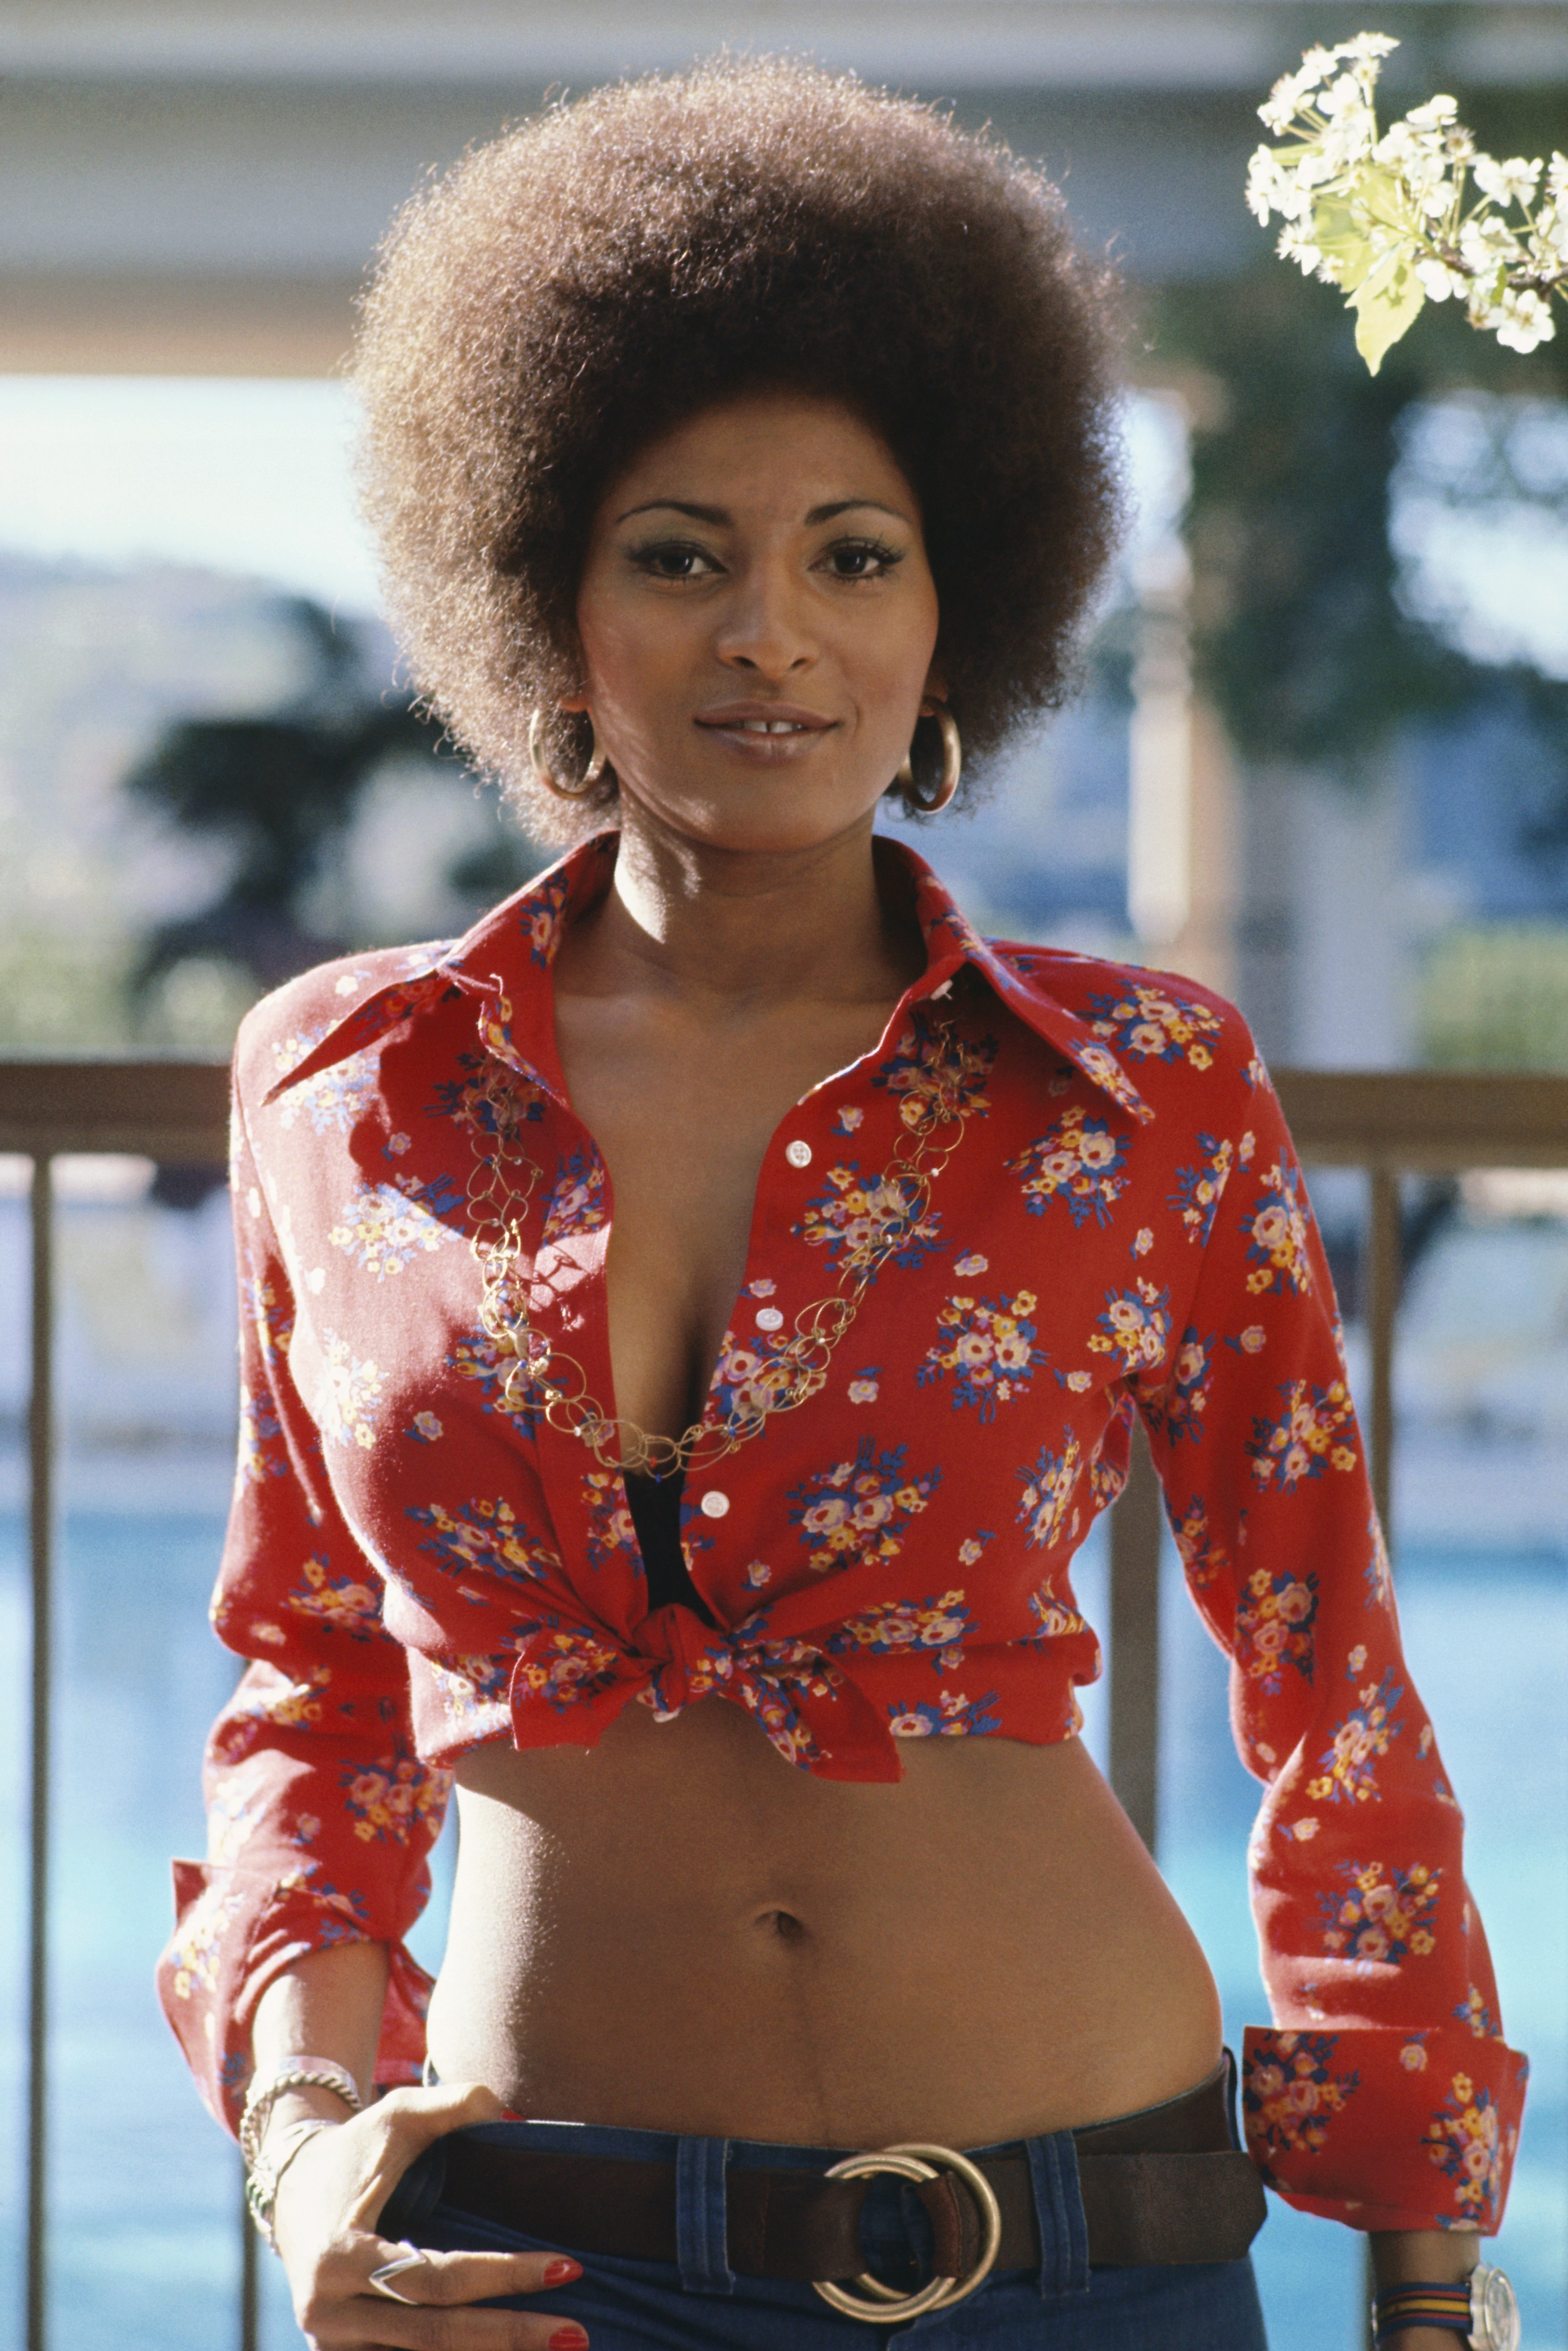 Pam Grier, AKA Foxy Brown, And Her Sexy Crop Top (PHOTO)